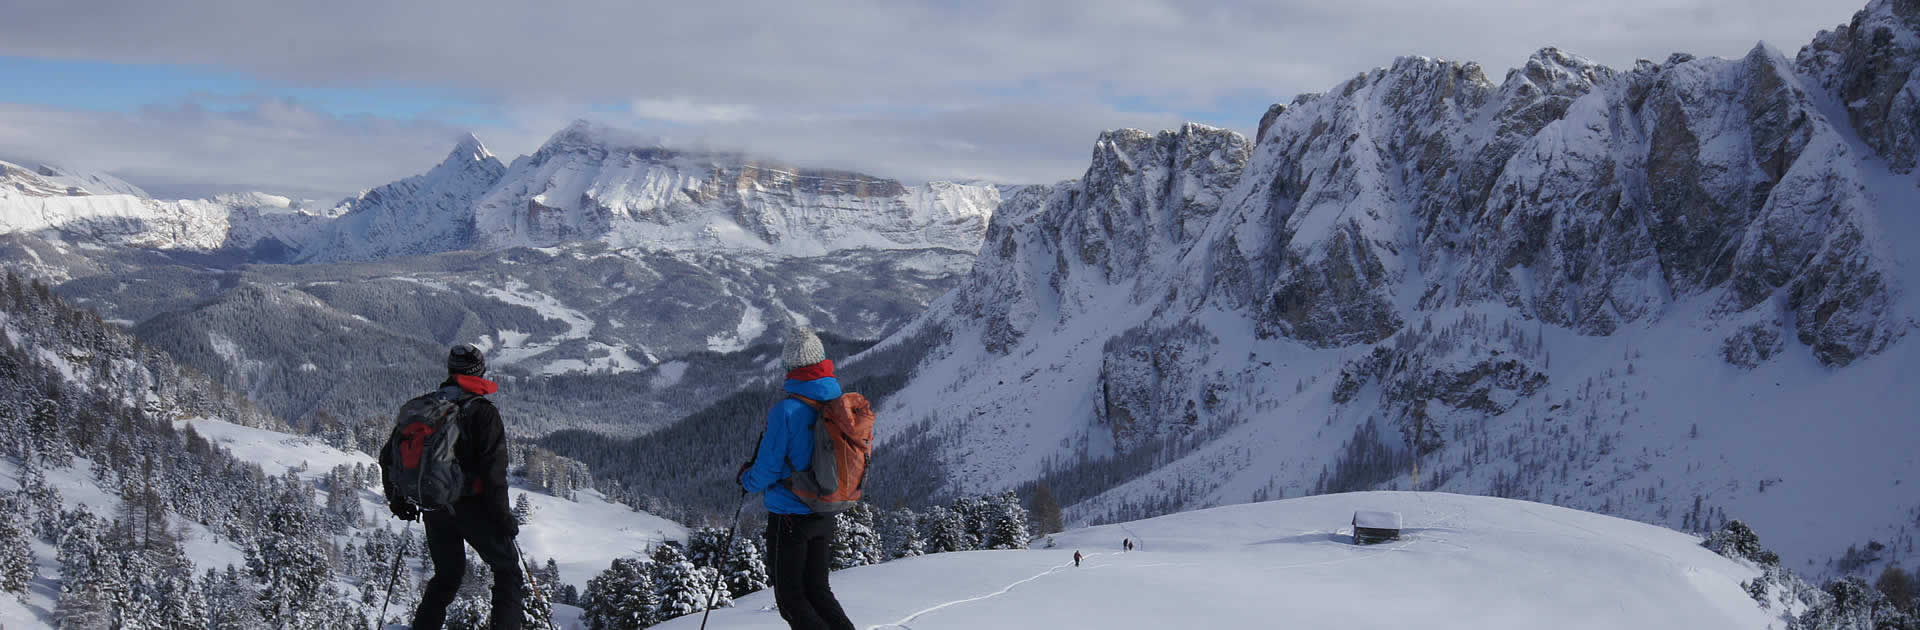 Ski mountaineering and Snowshoe